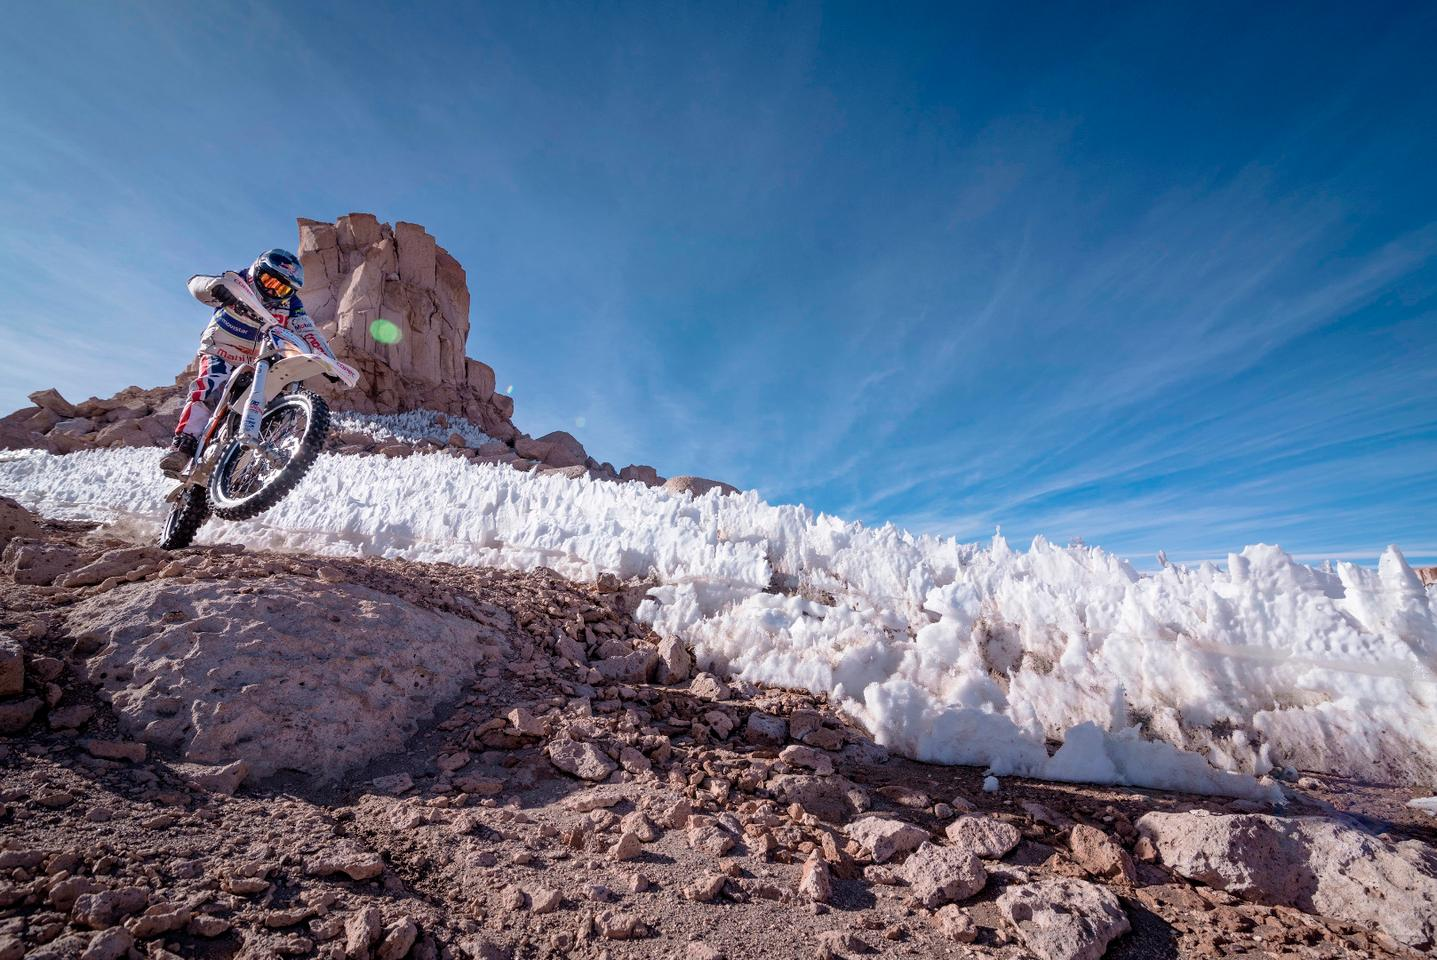 Francisco Lopez and his KTM Freeride E-XC had to face challenging terrain, high altitude, and low temperatures